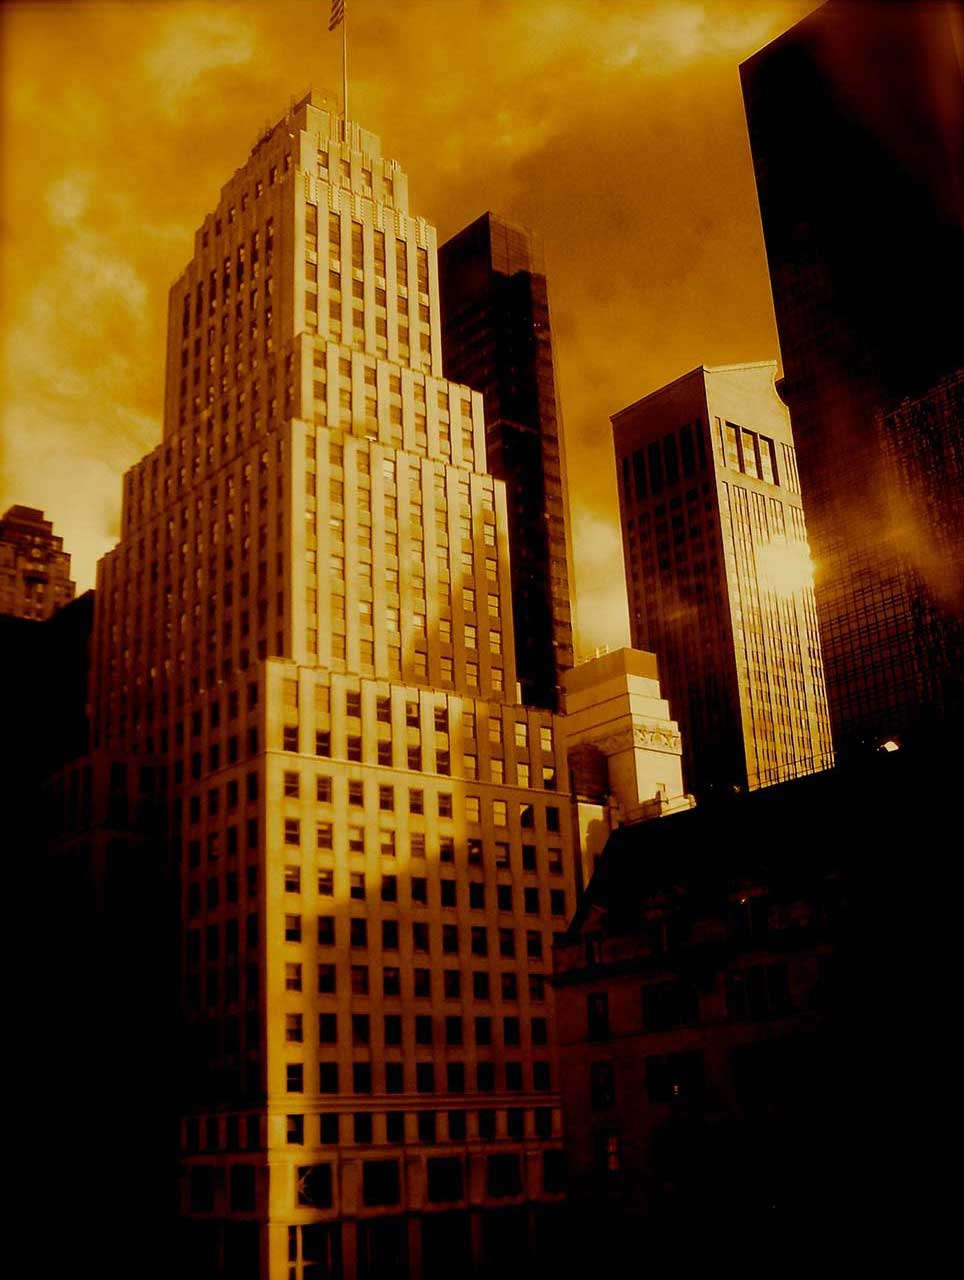 urban, art deco, dusk, Manhattan, building, shadow, New York City, gold